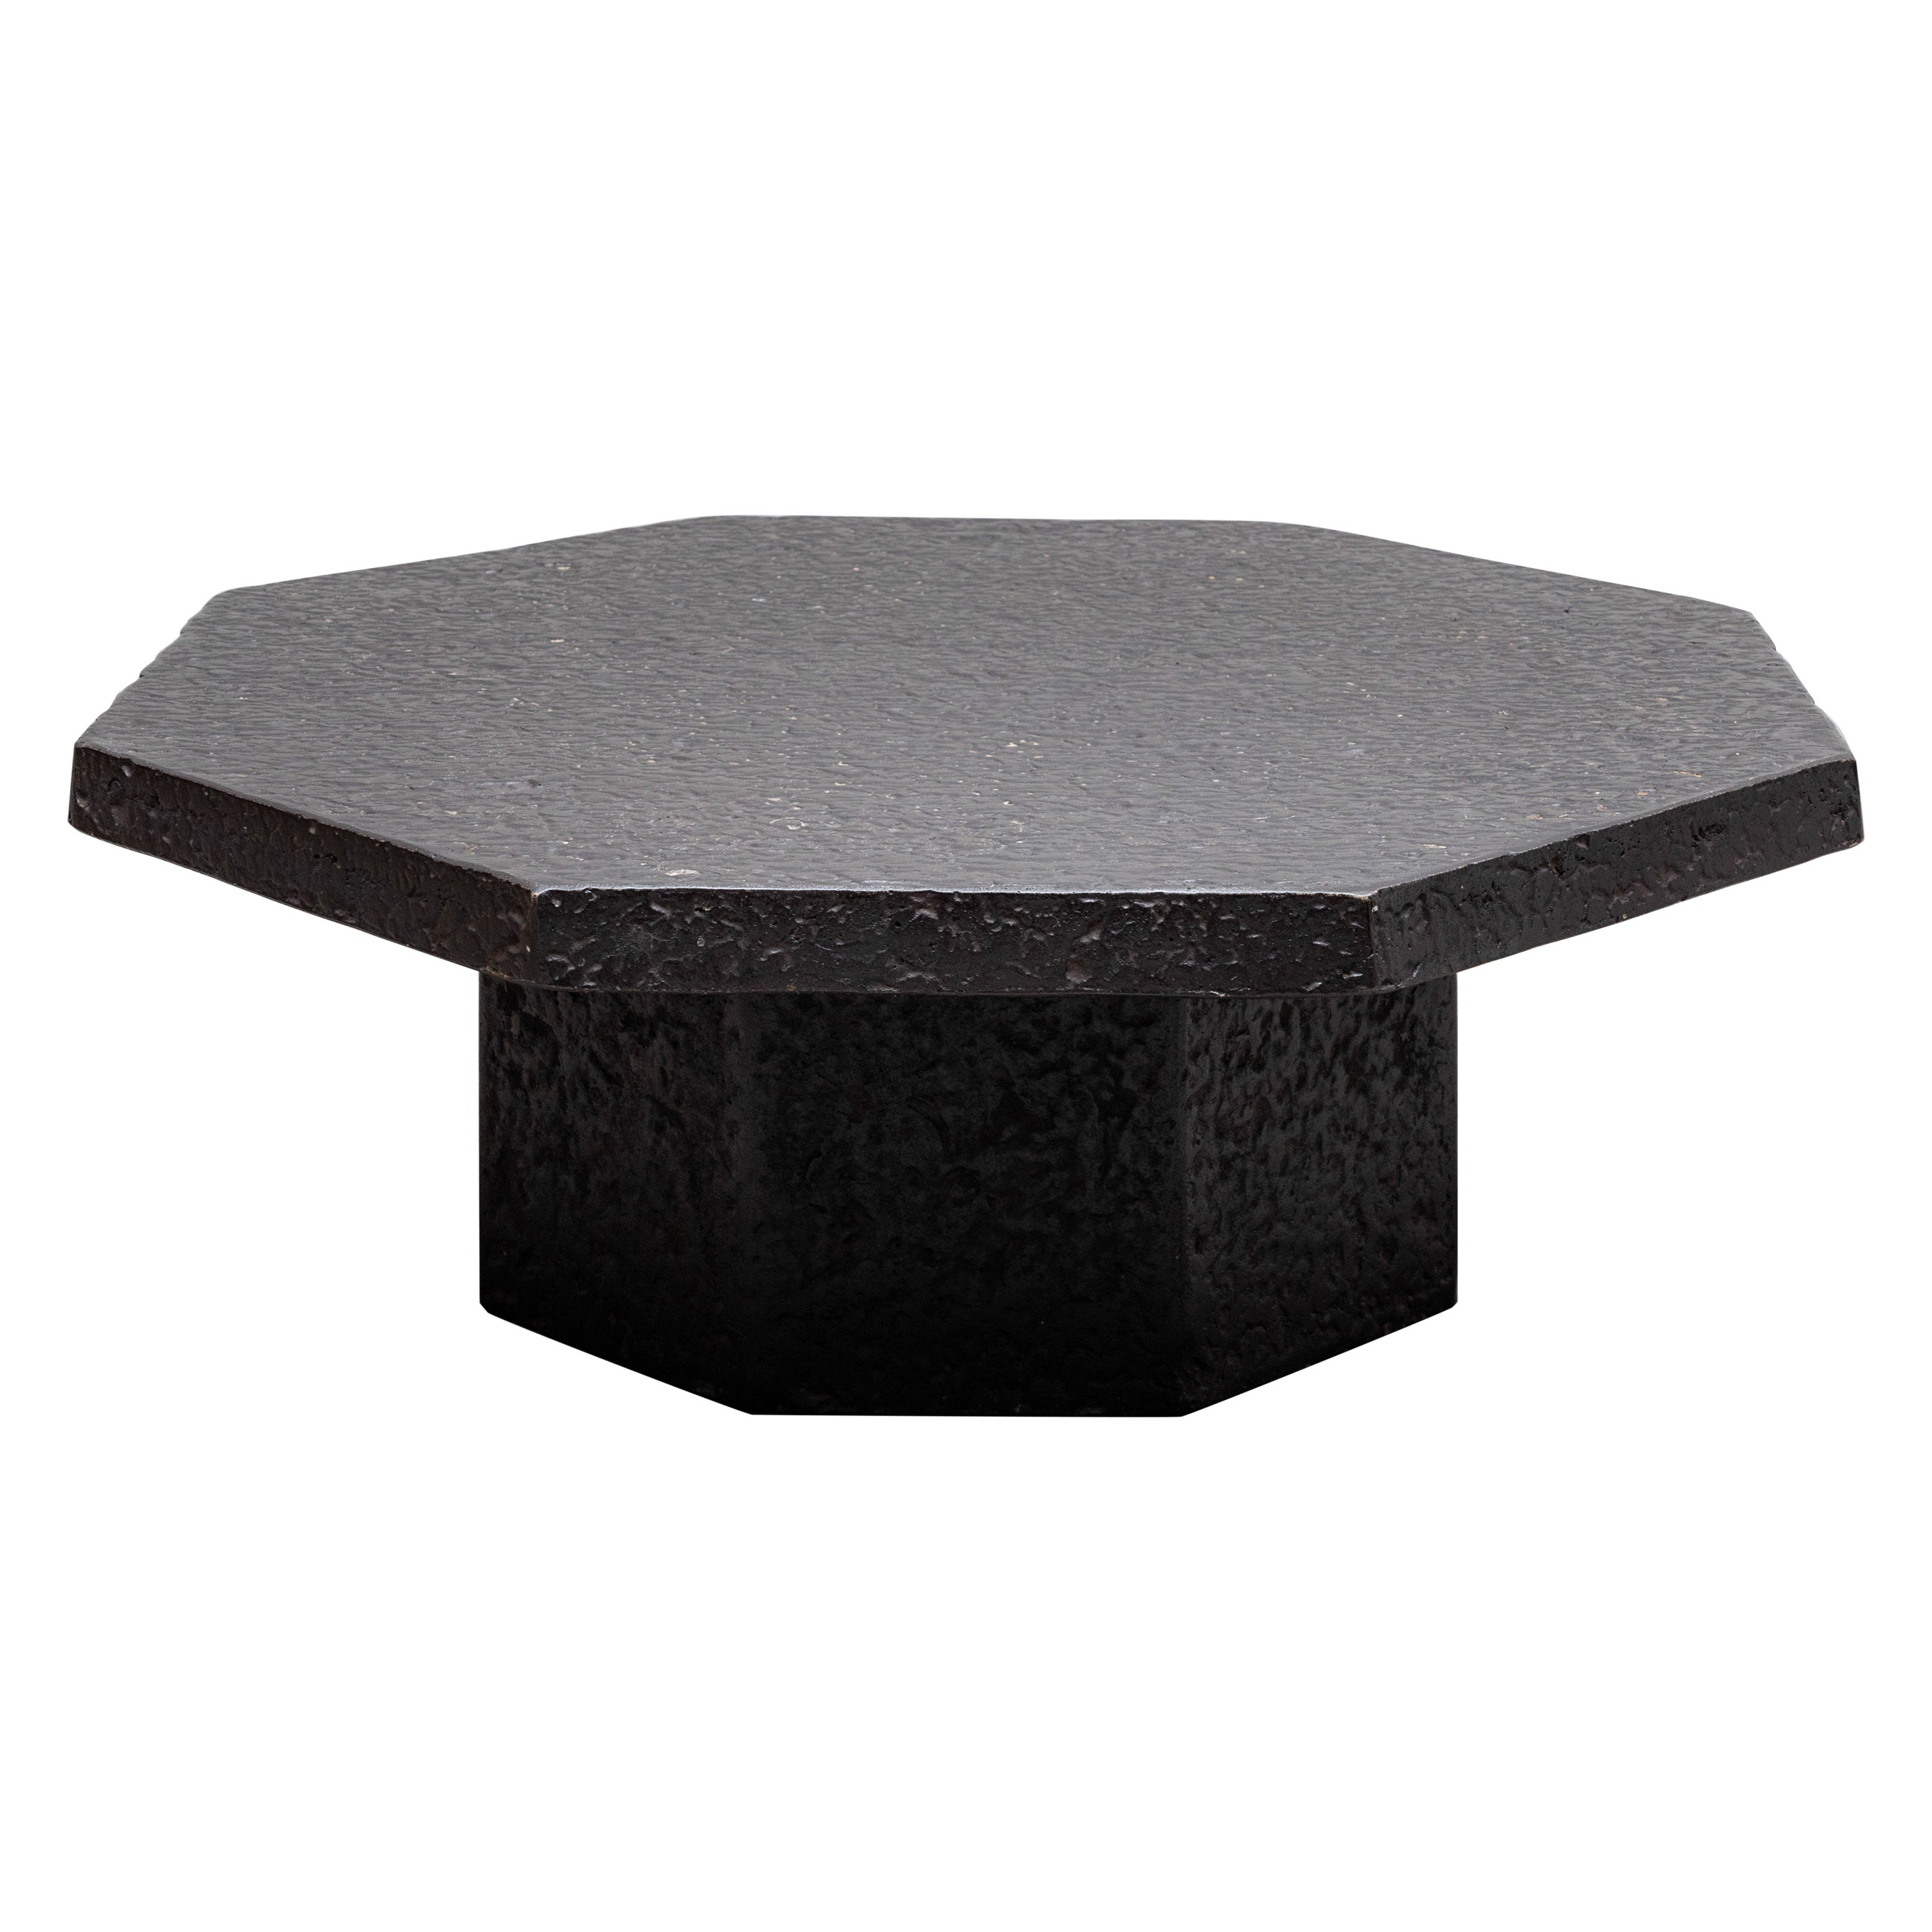 Brutalist Octagonal Faux Lava Stone Coffee Table